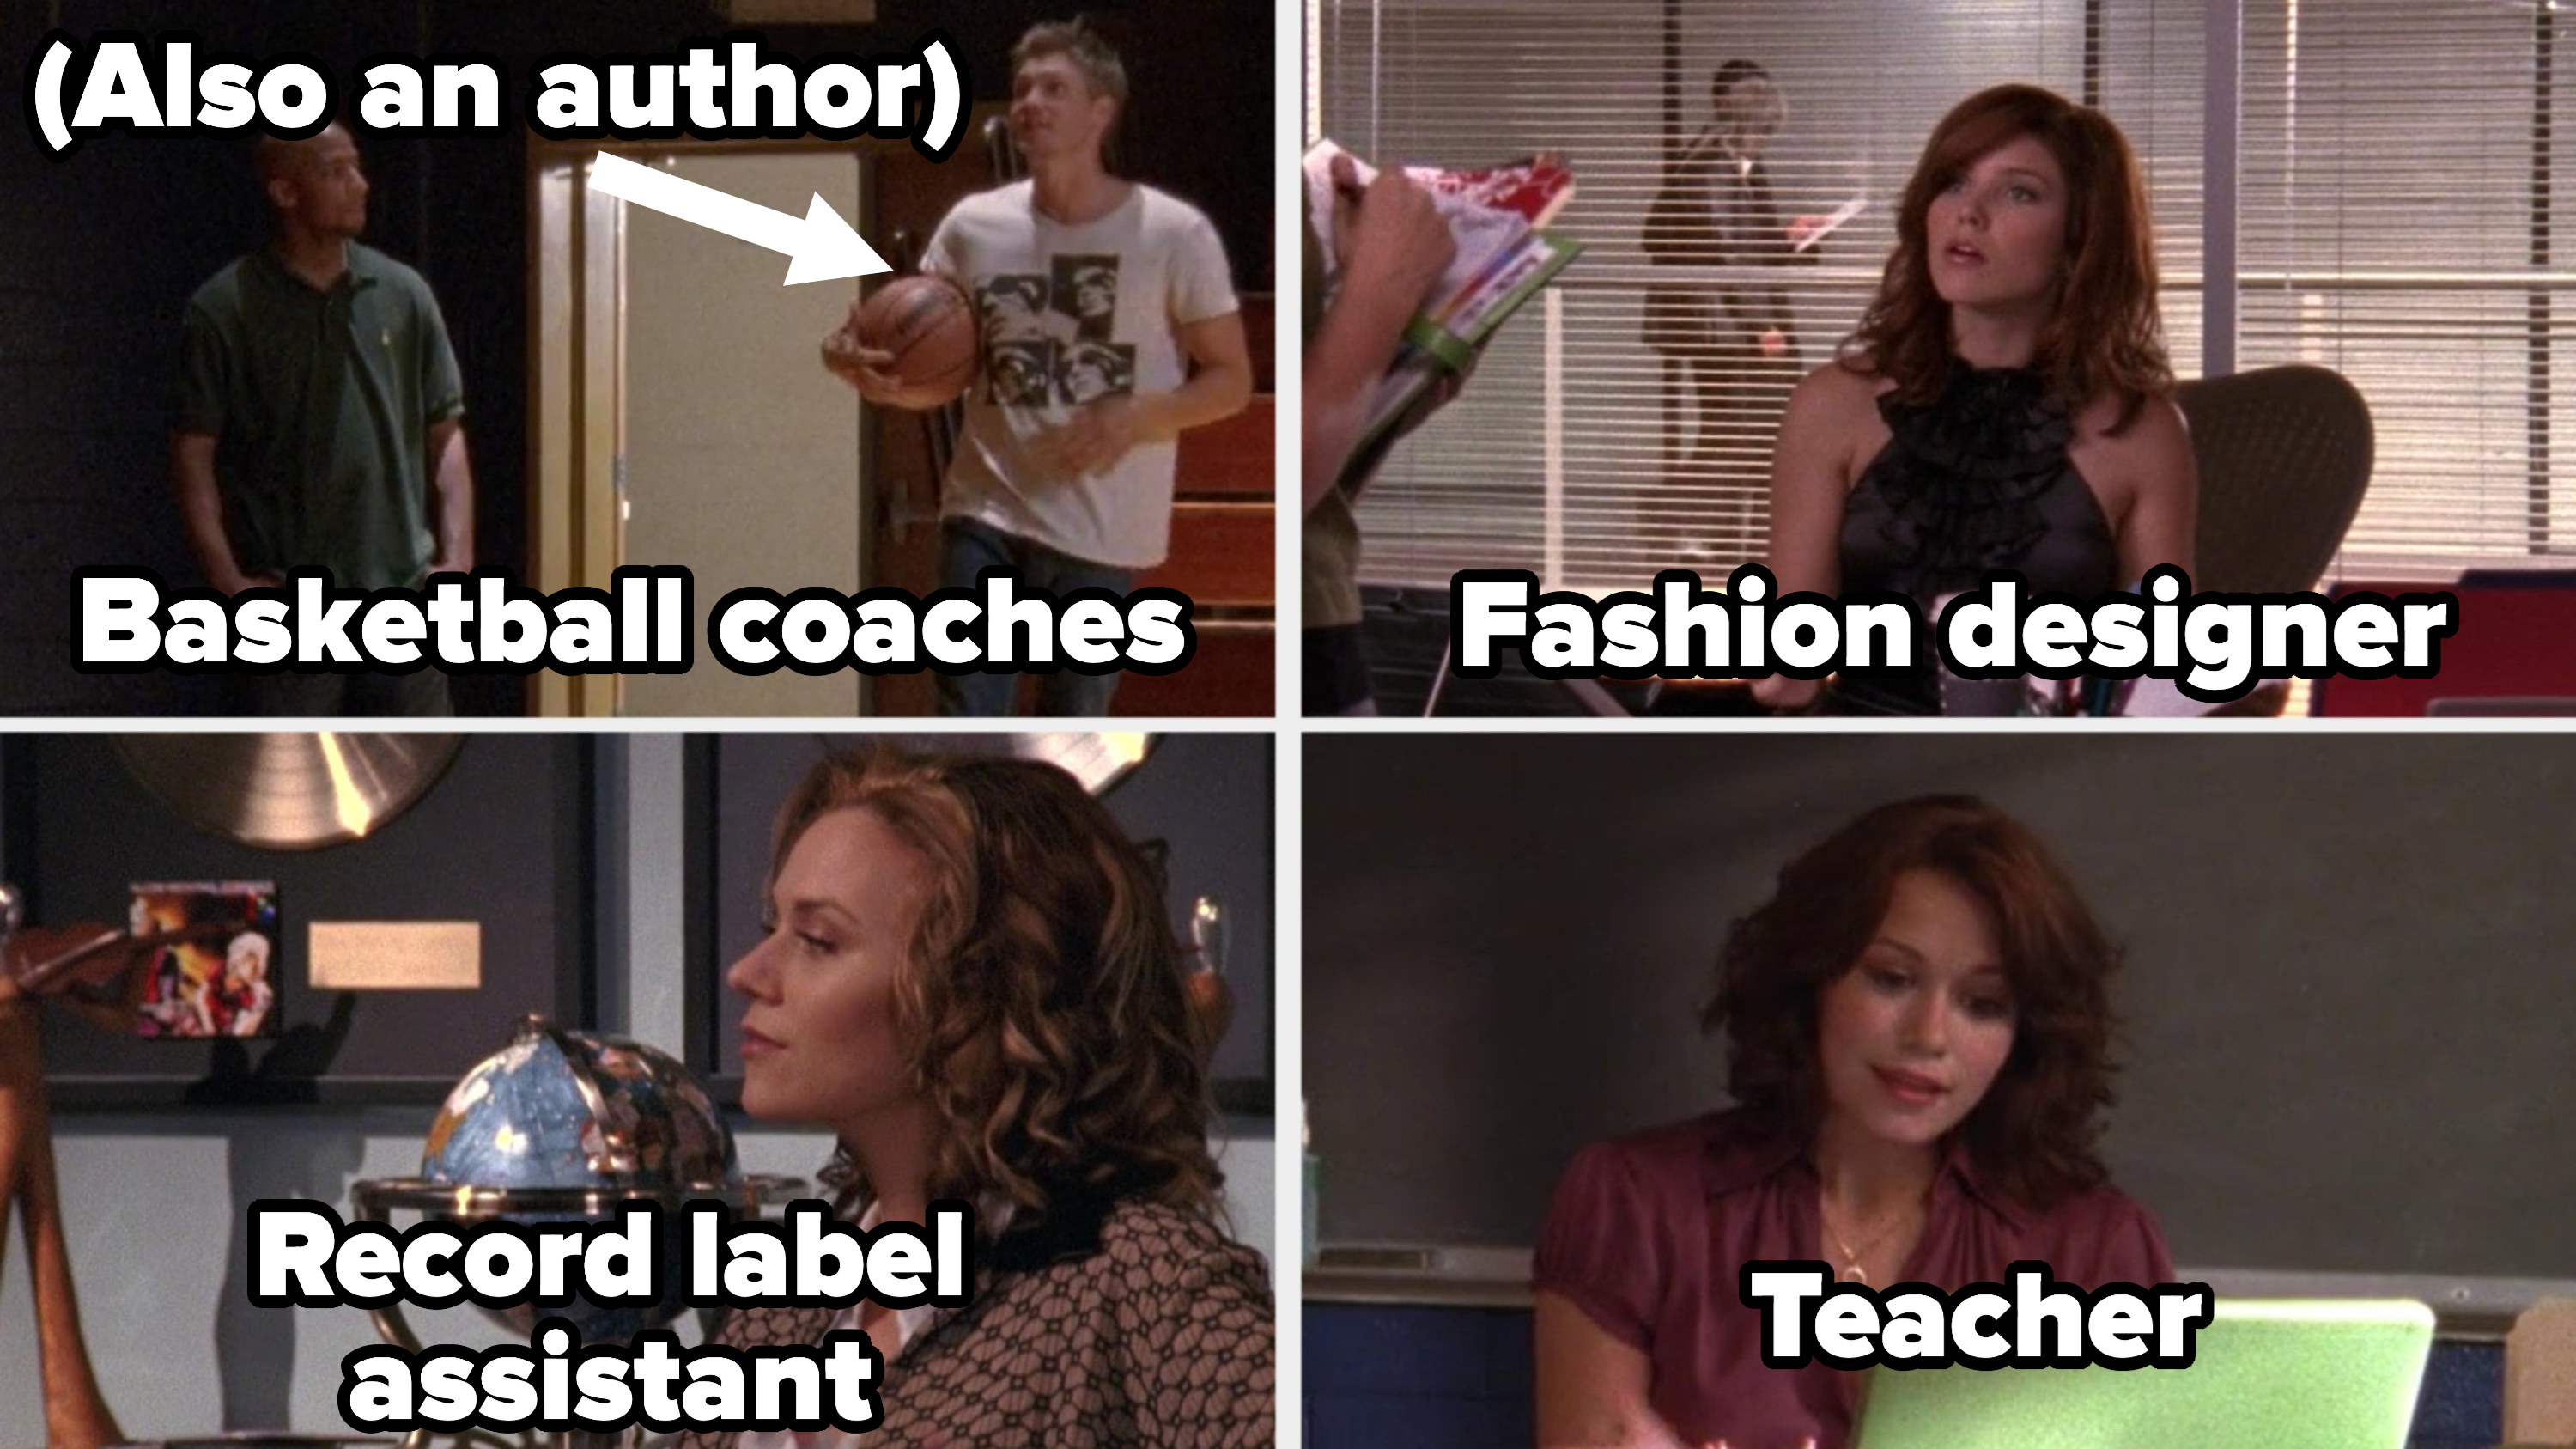 Skills and Lucas in the gym, labeled basketball coaches, Brooke labeled fashion designer, Peyton labeled music assistant, and Haley labeled teacher